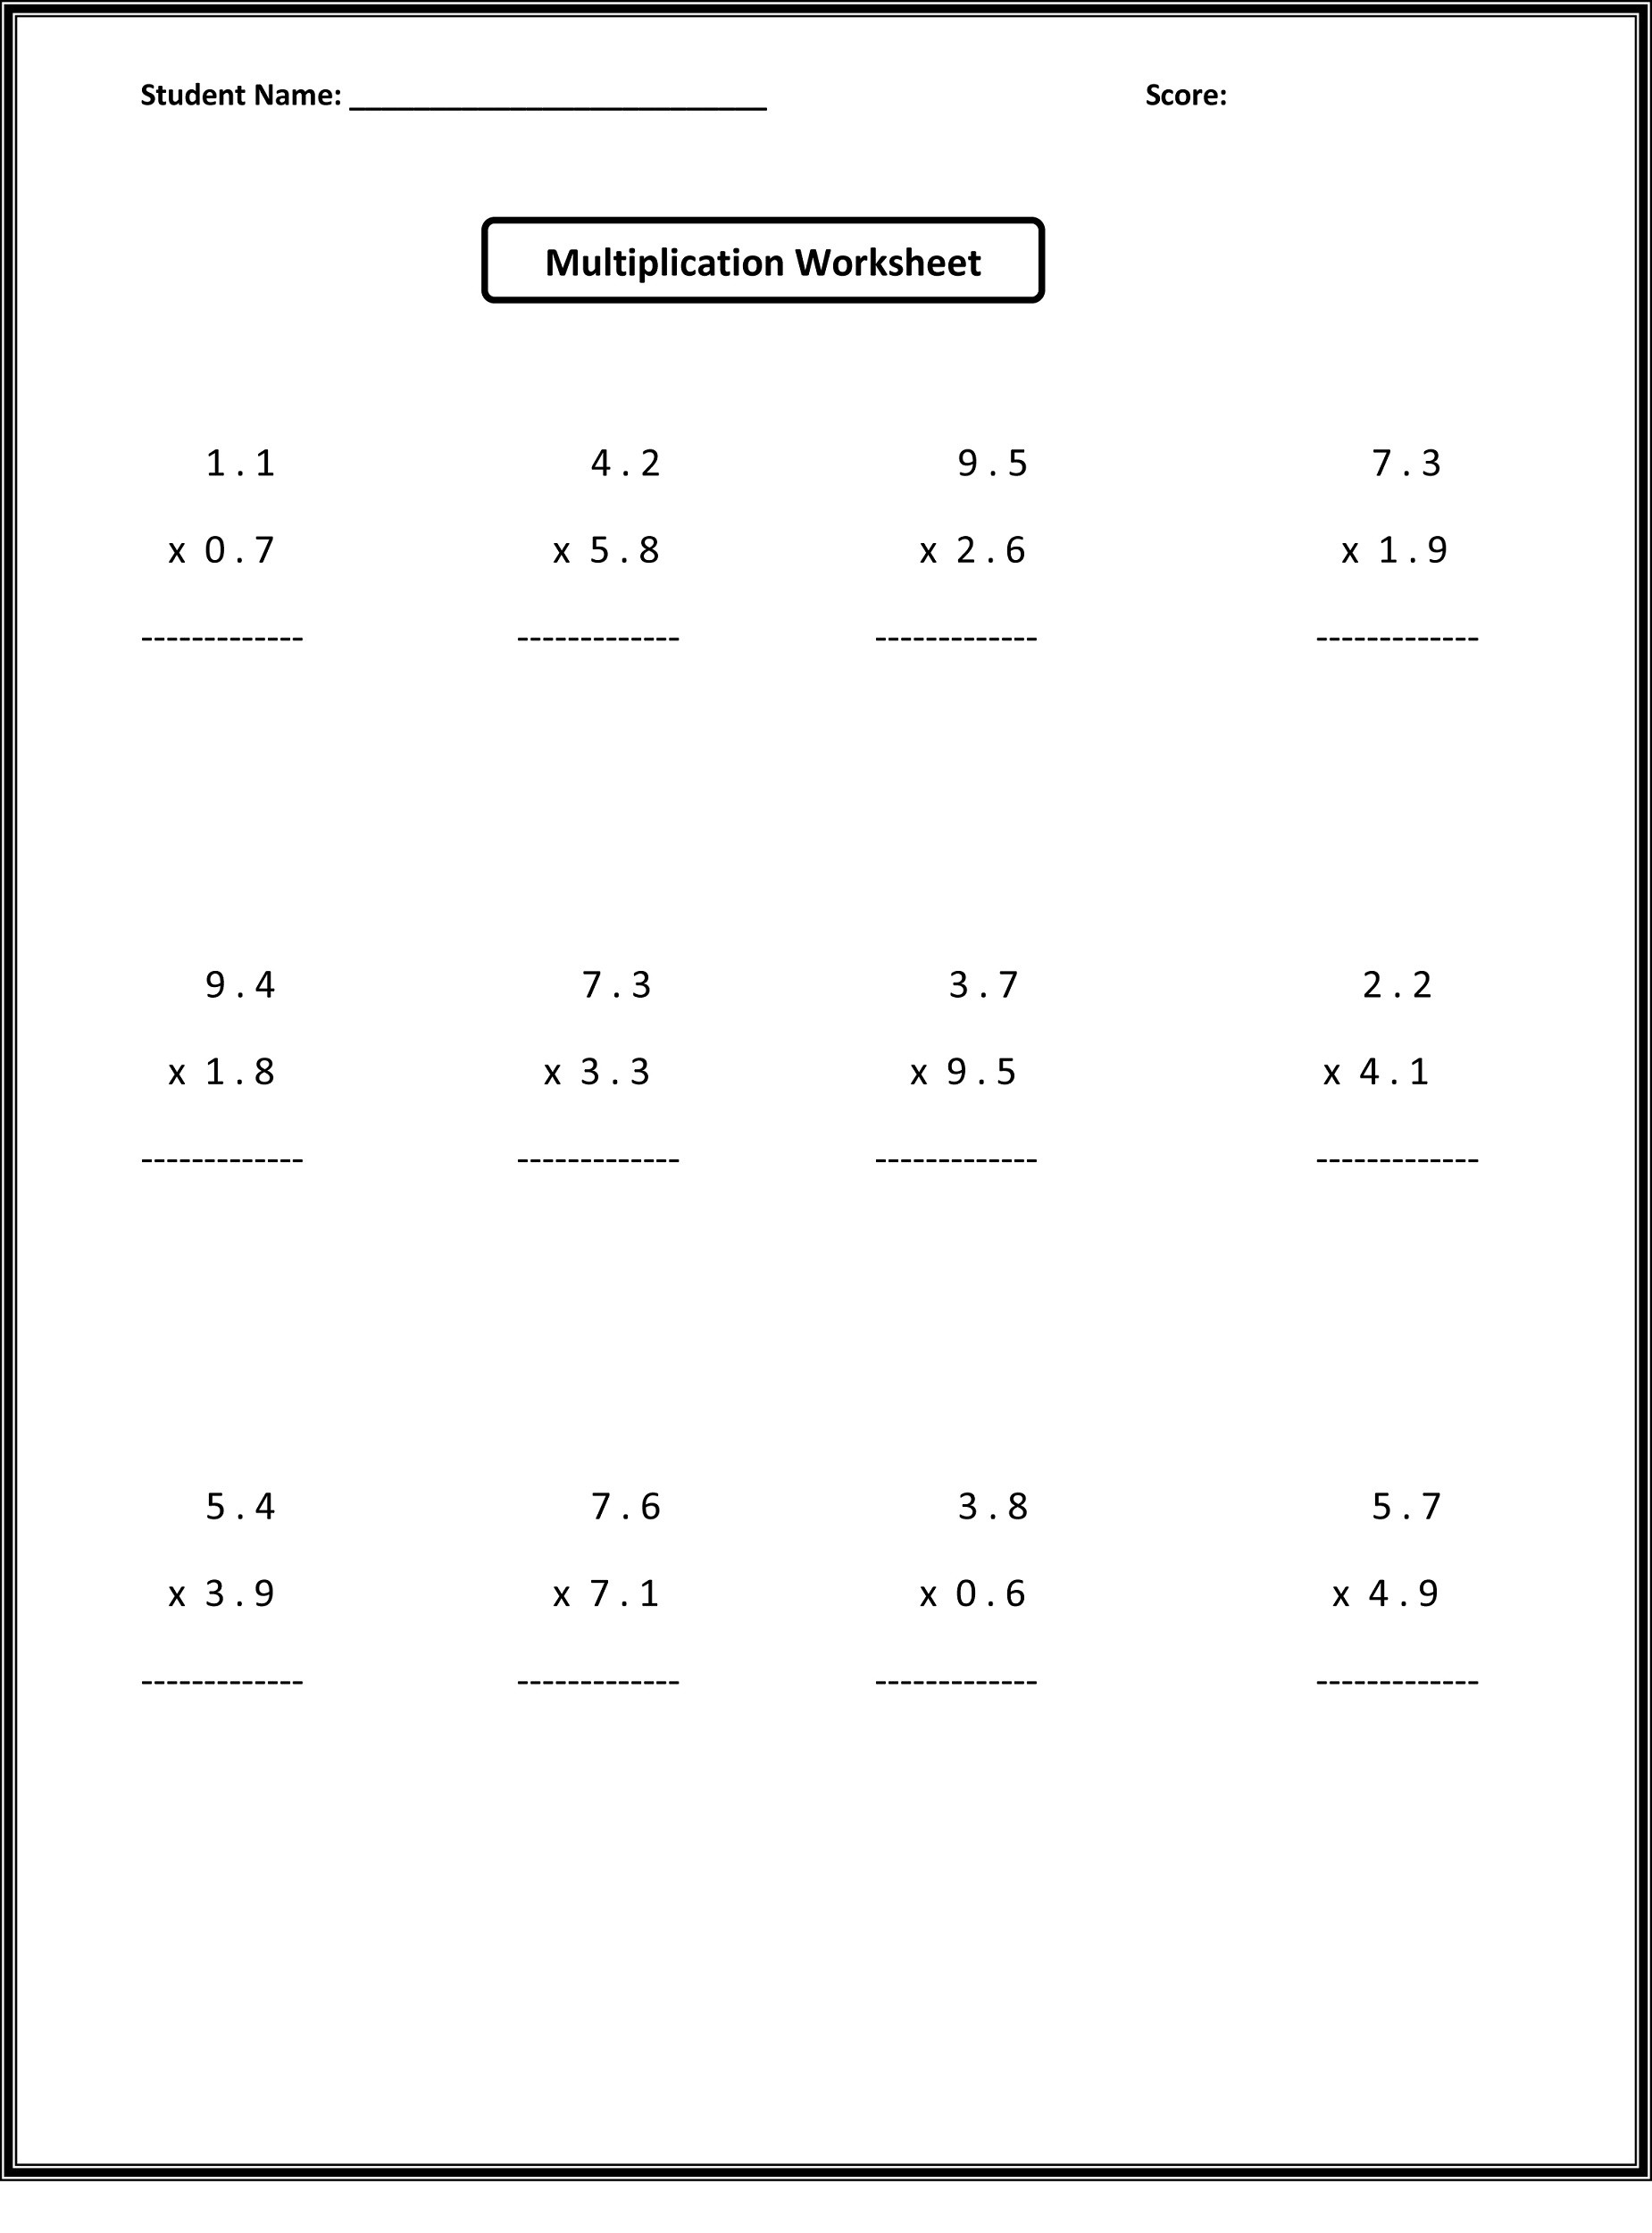 Probability Worksheet 5th Grade 6th Grade Math Worksheets Activity Shelter Free Decimals